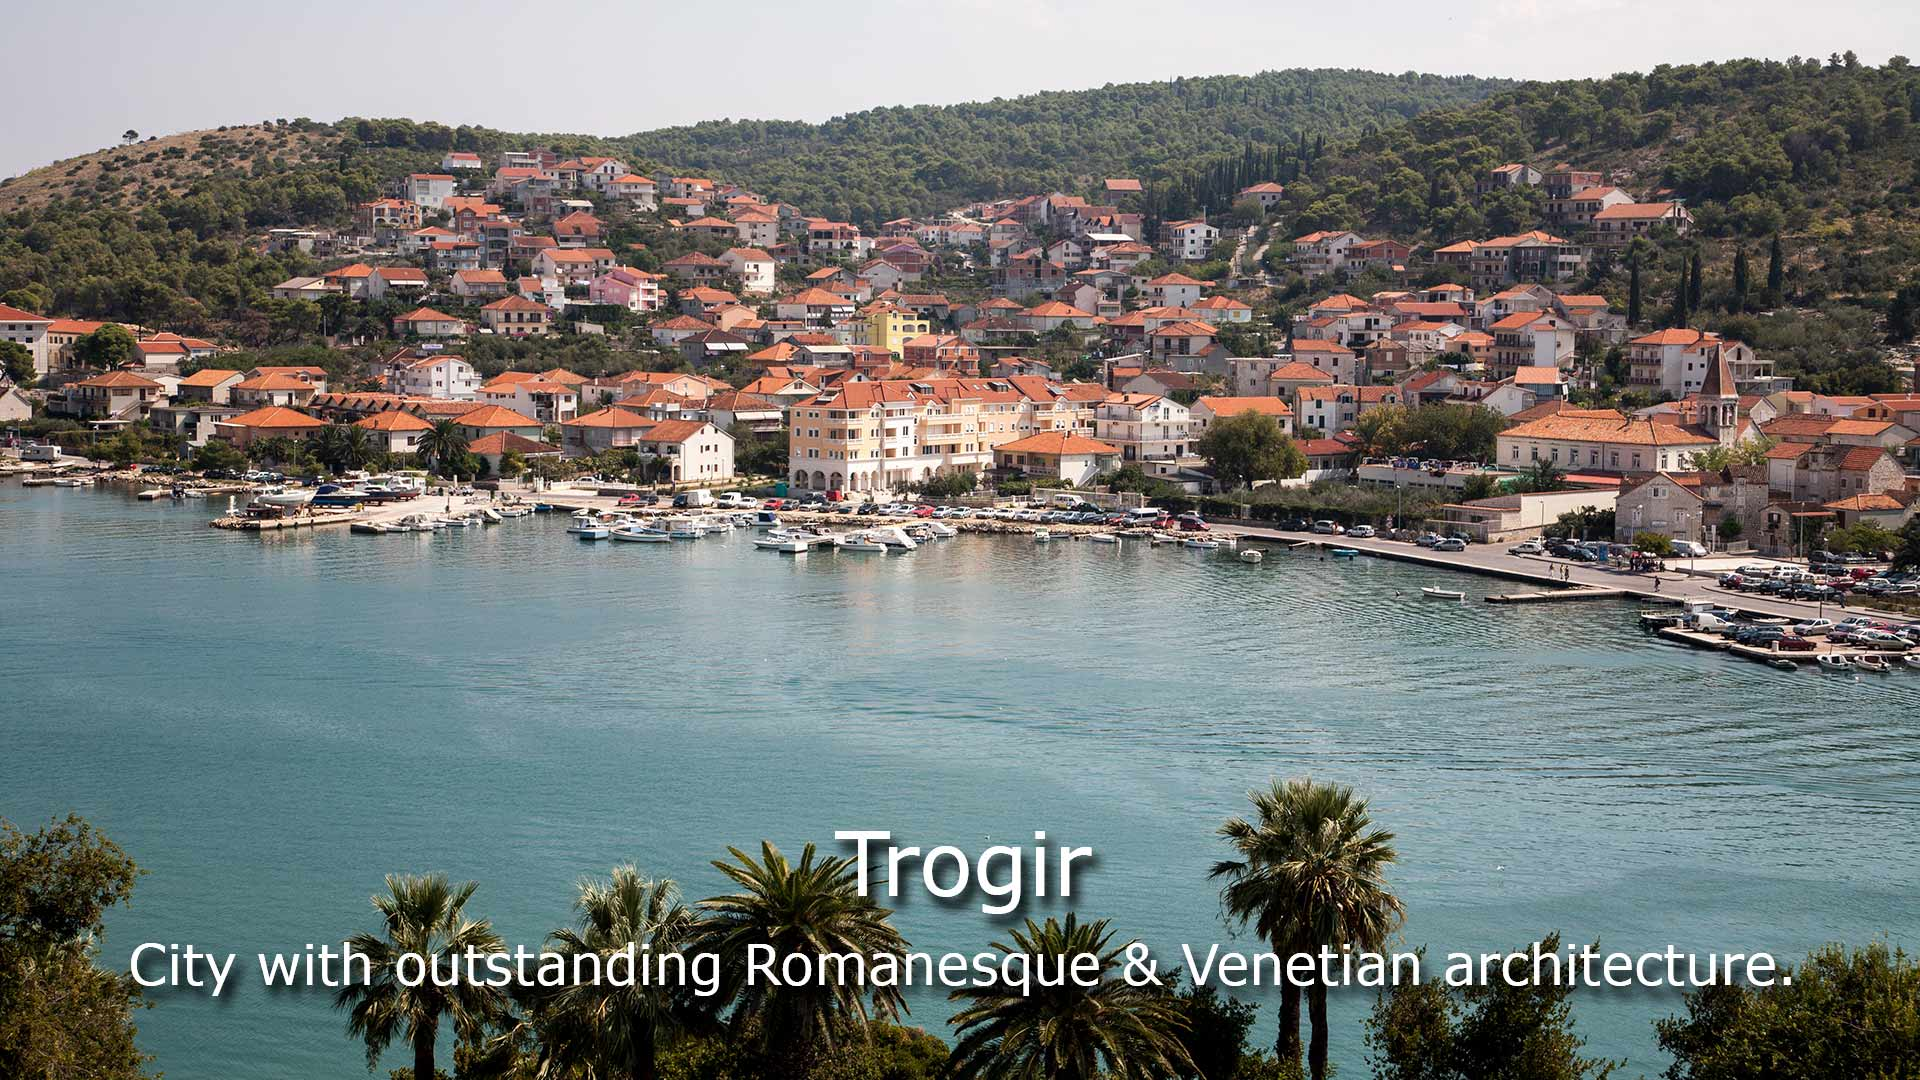 View of sea coast in Trogir town with colorful houses, Dalmatia, Croatia